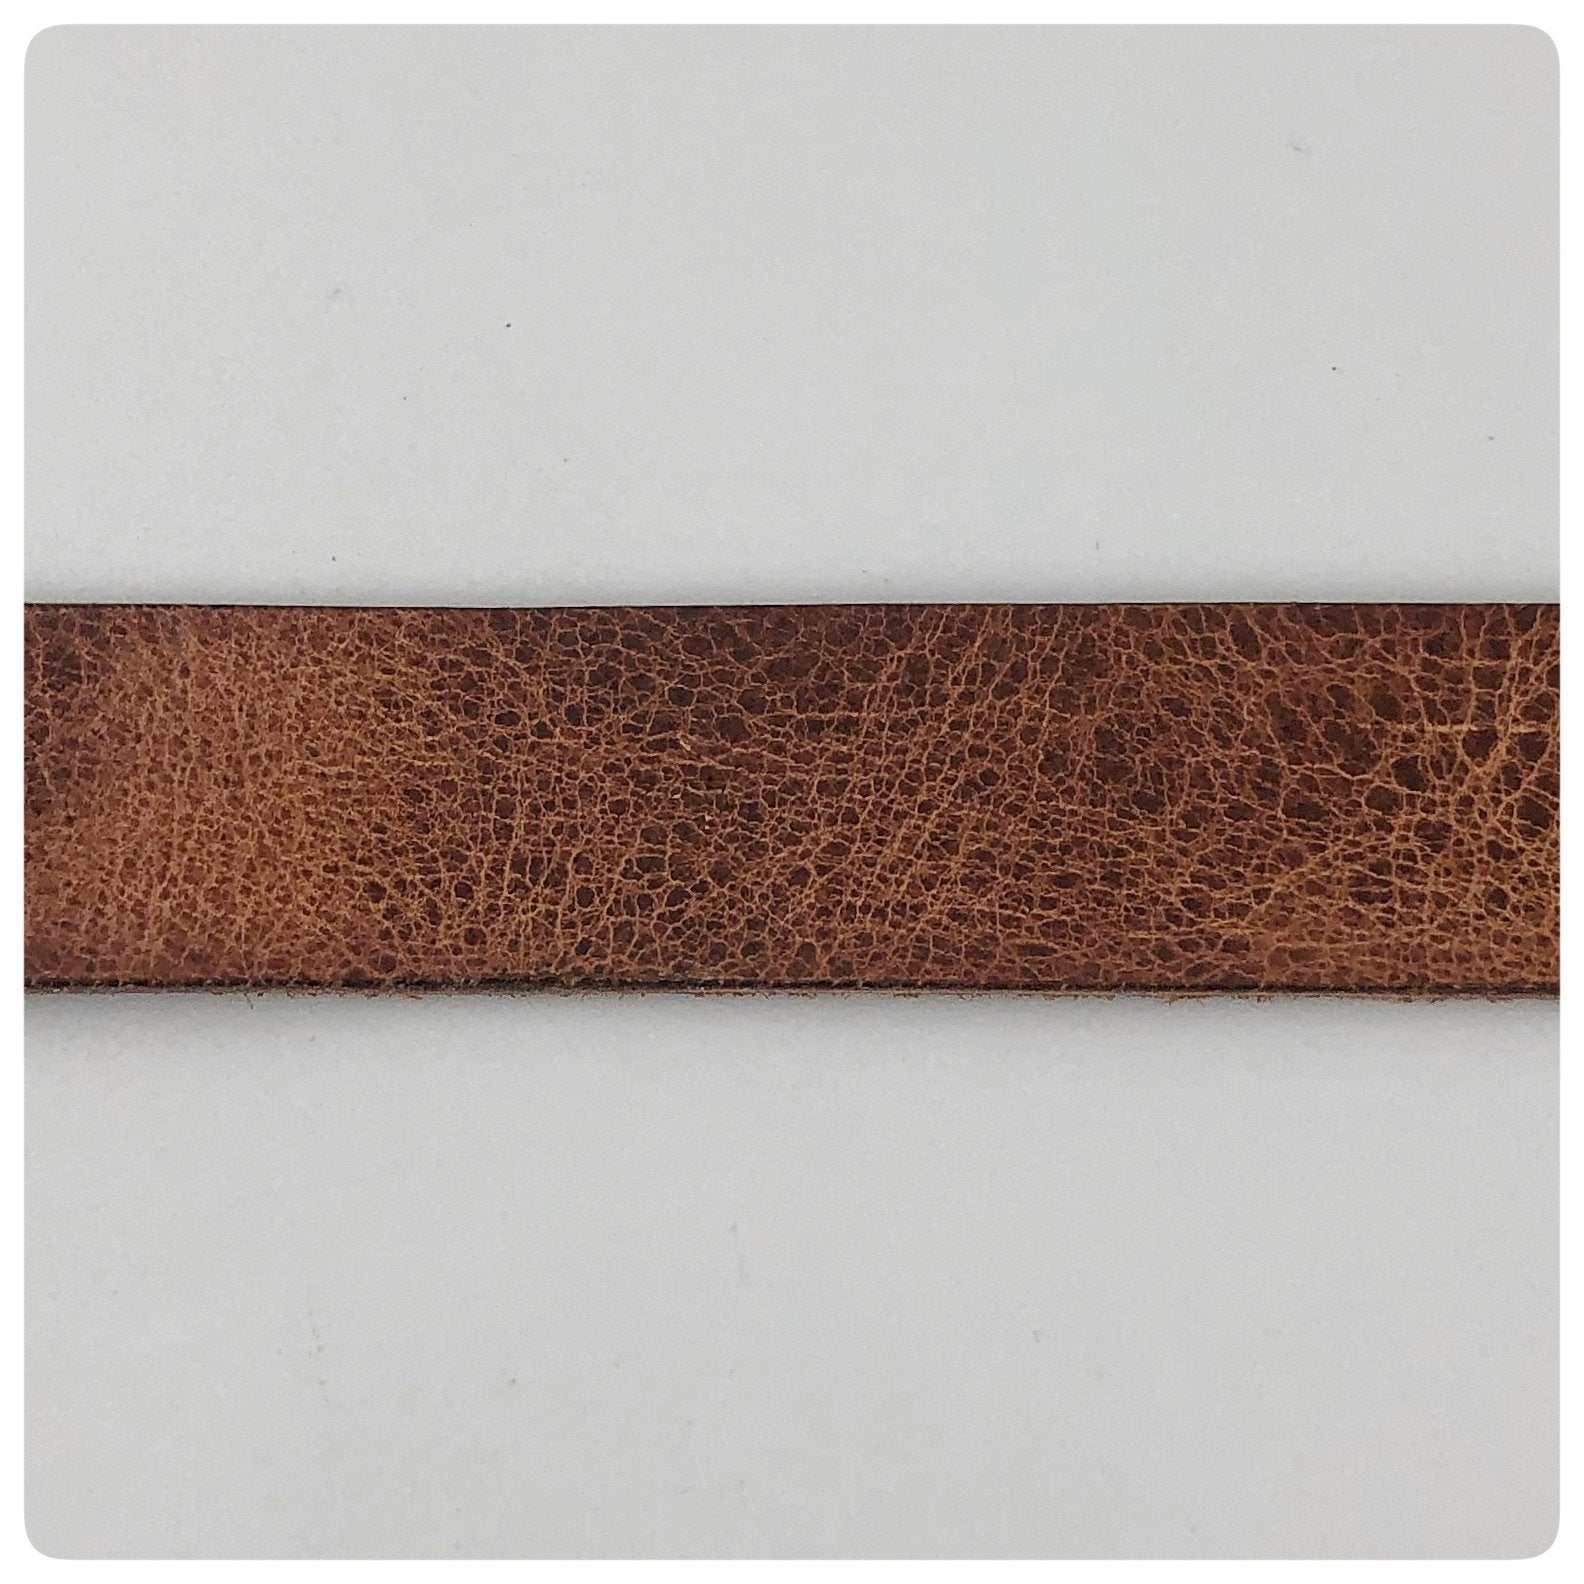 Replacement Leather Belt Strip for Oyster and Pea Crab Belt and Buckle, G2 Silver, Charleston, SC, New - The Silver Vault of Charleston